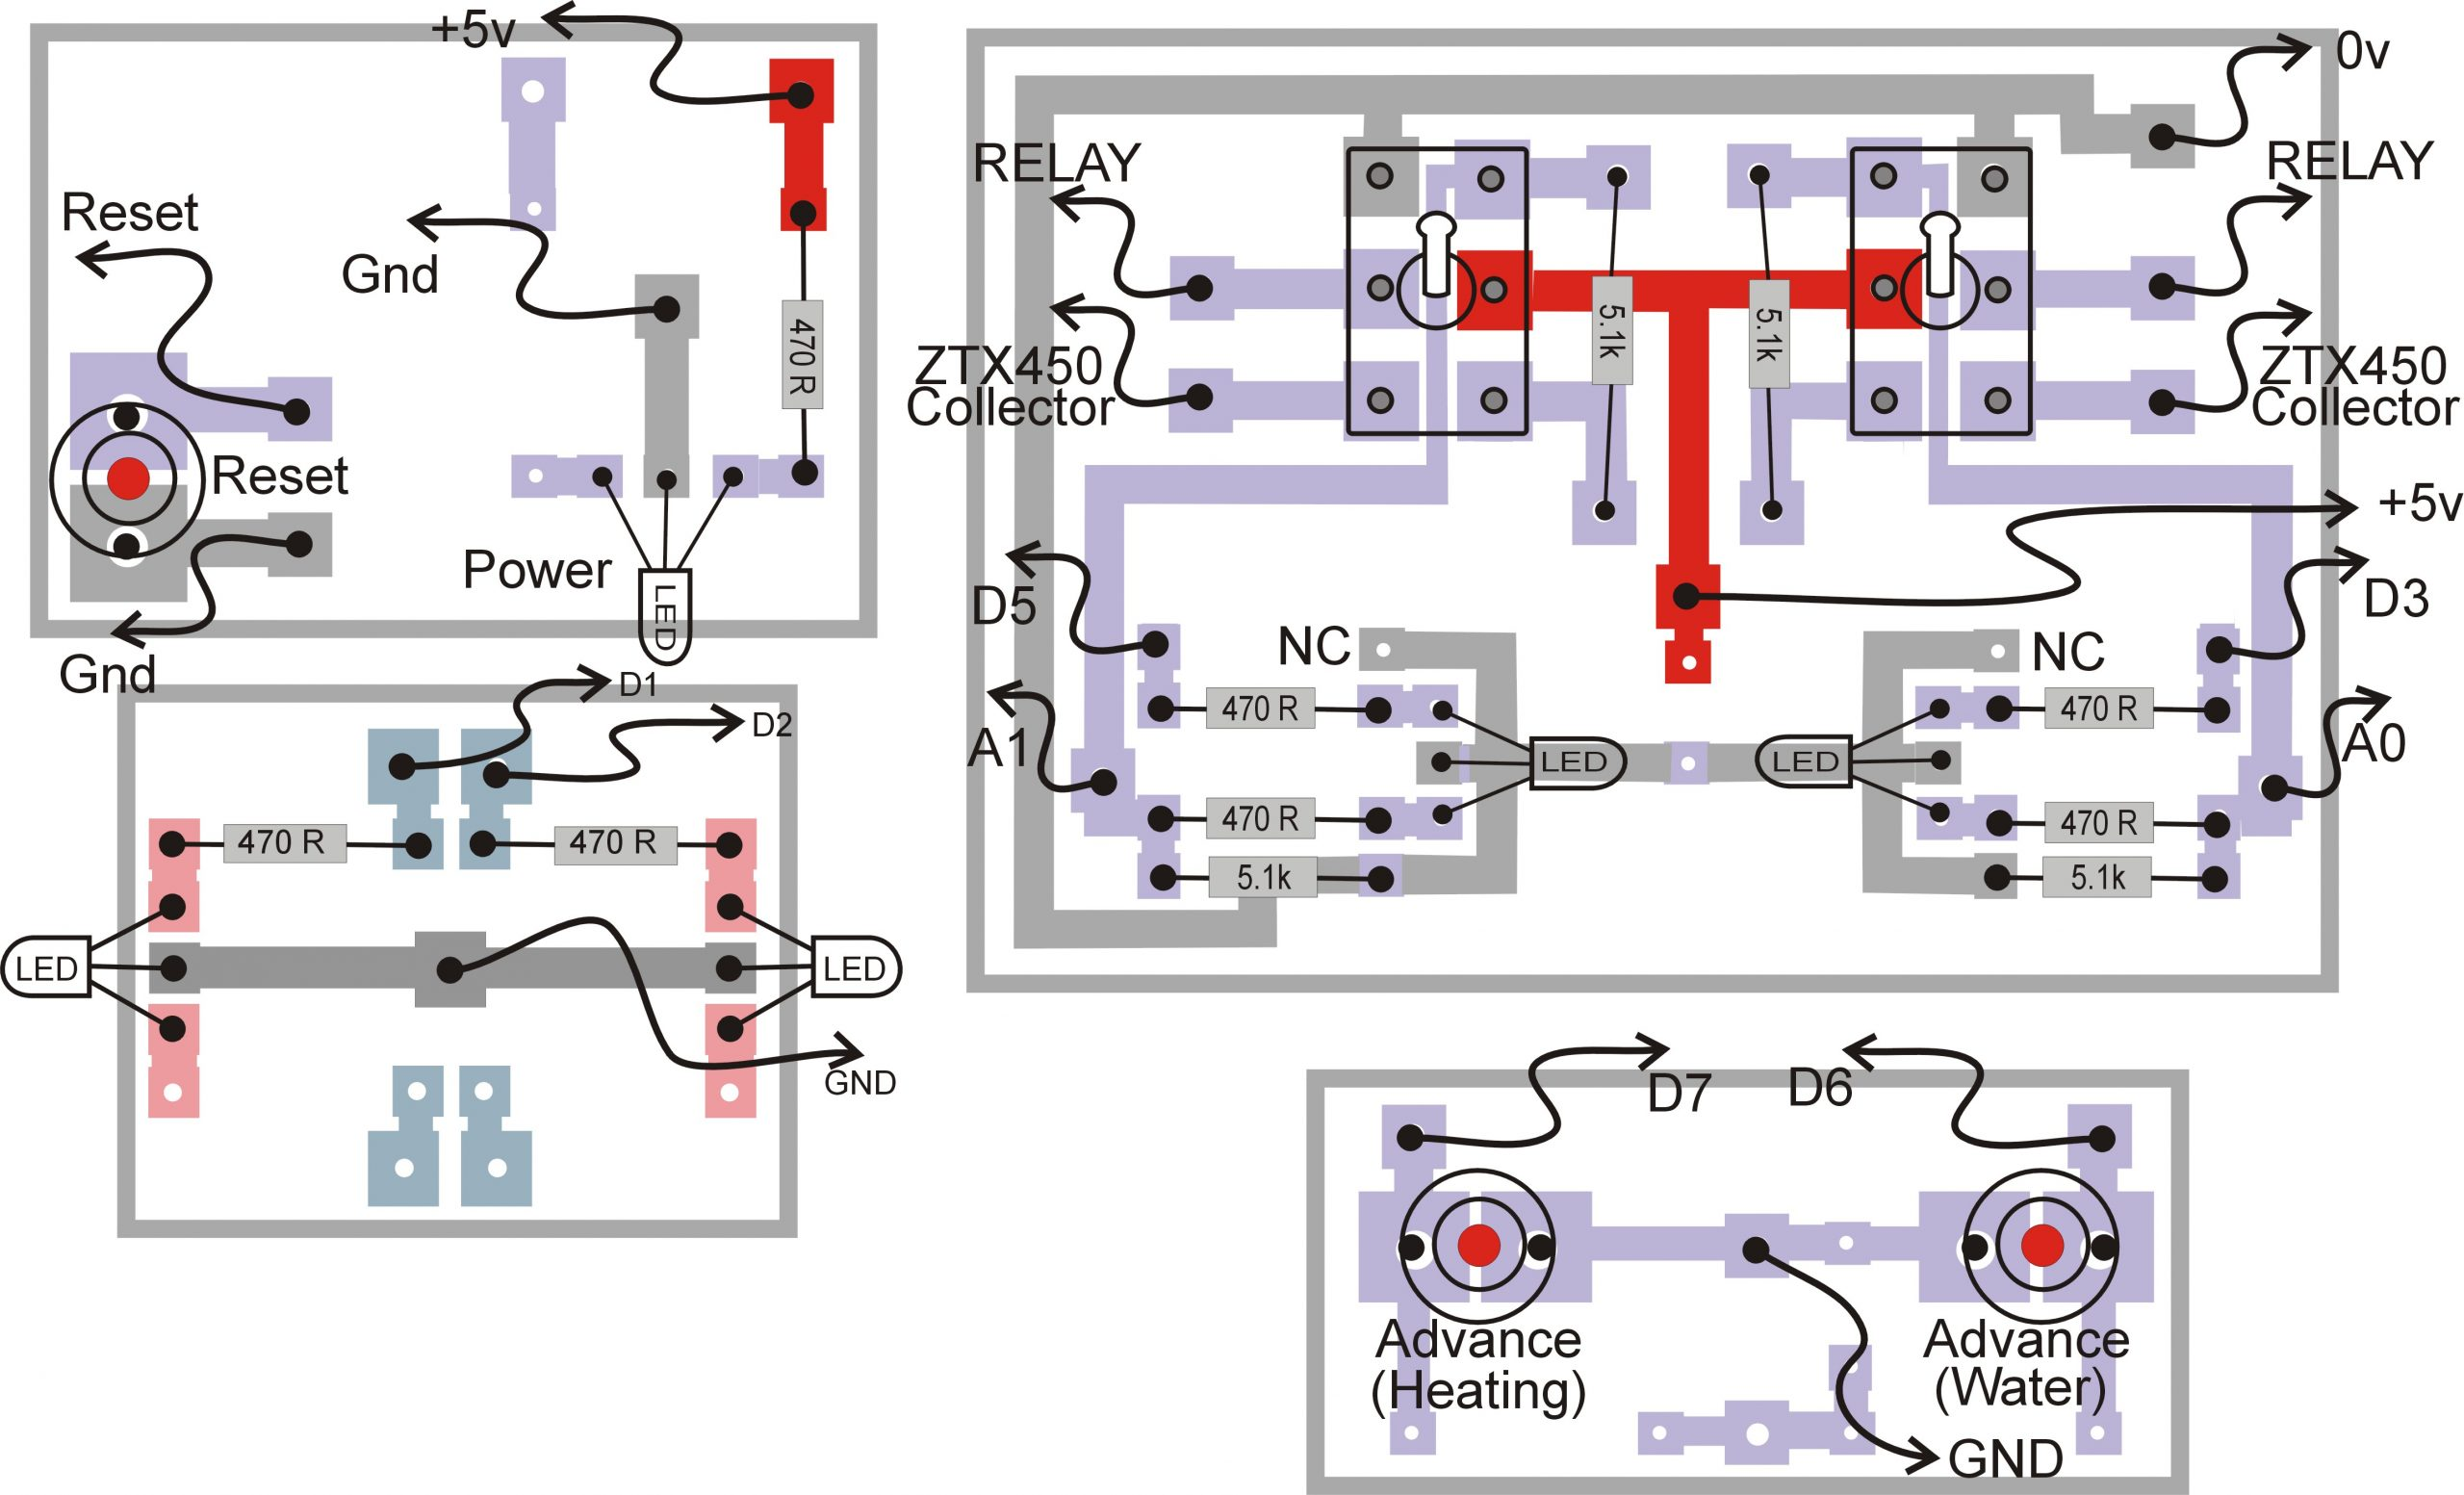 Pcb layout, switches, boiler timer